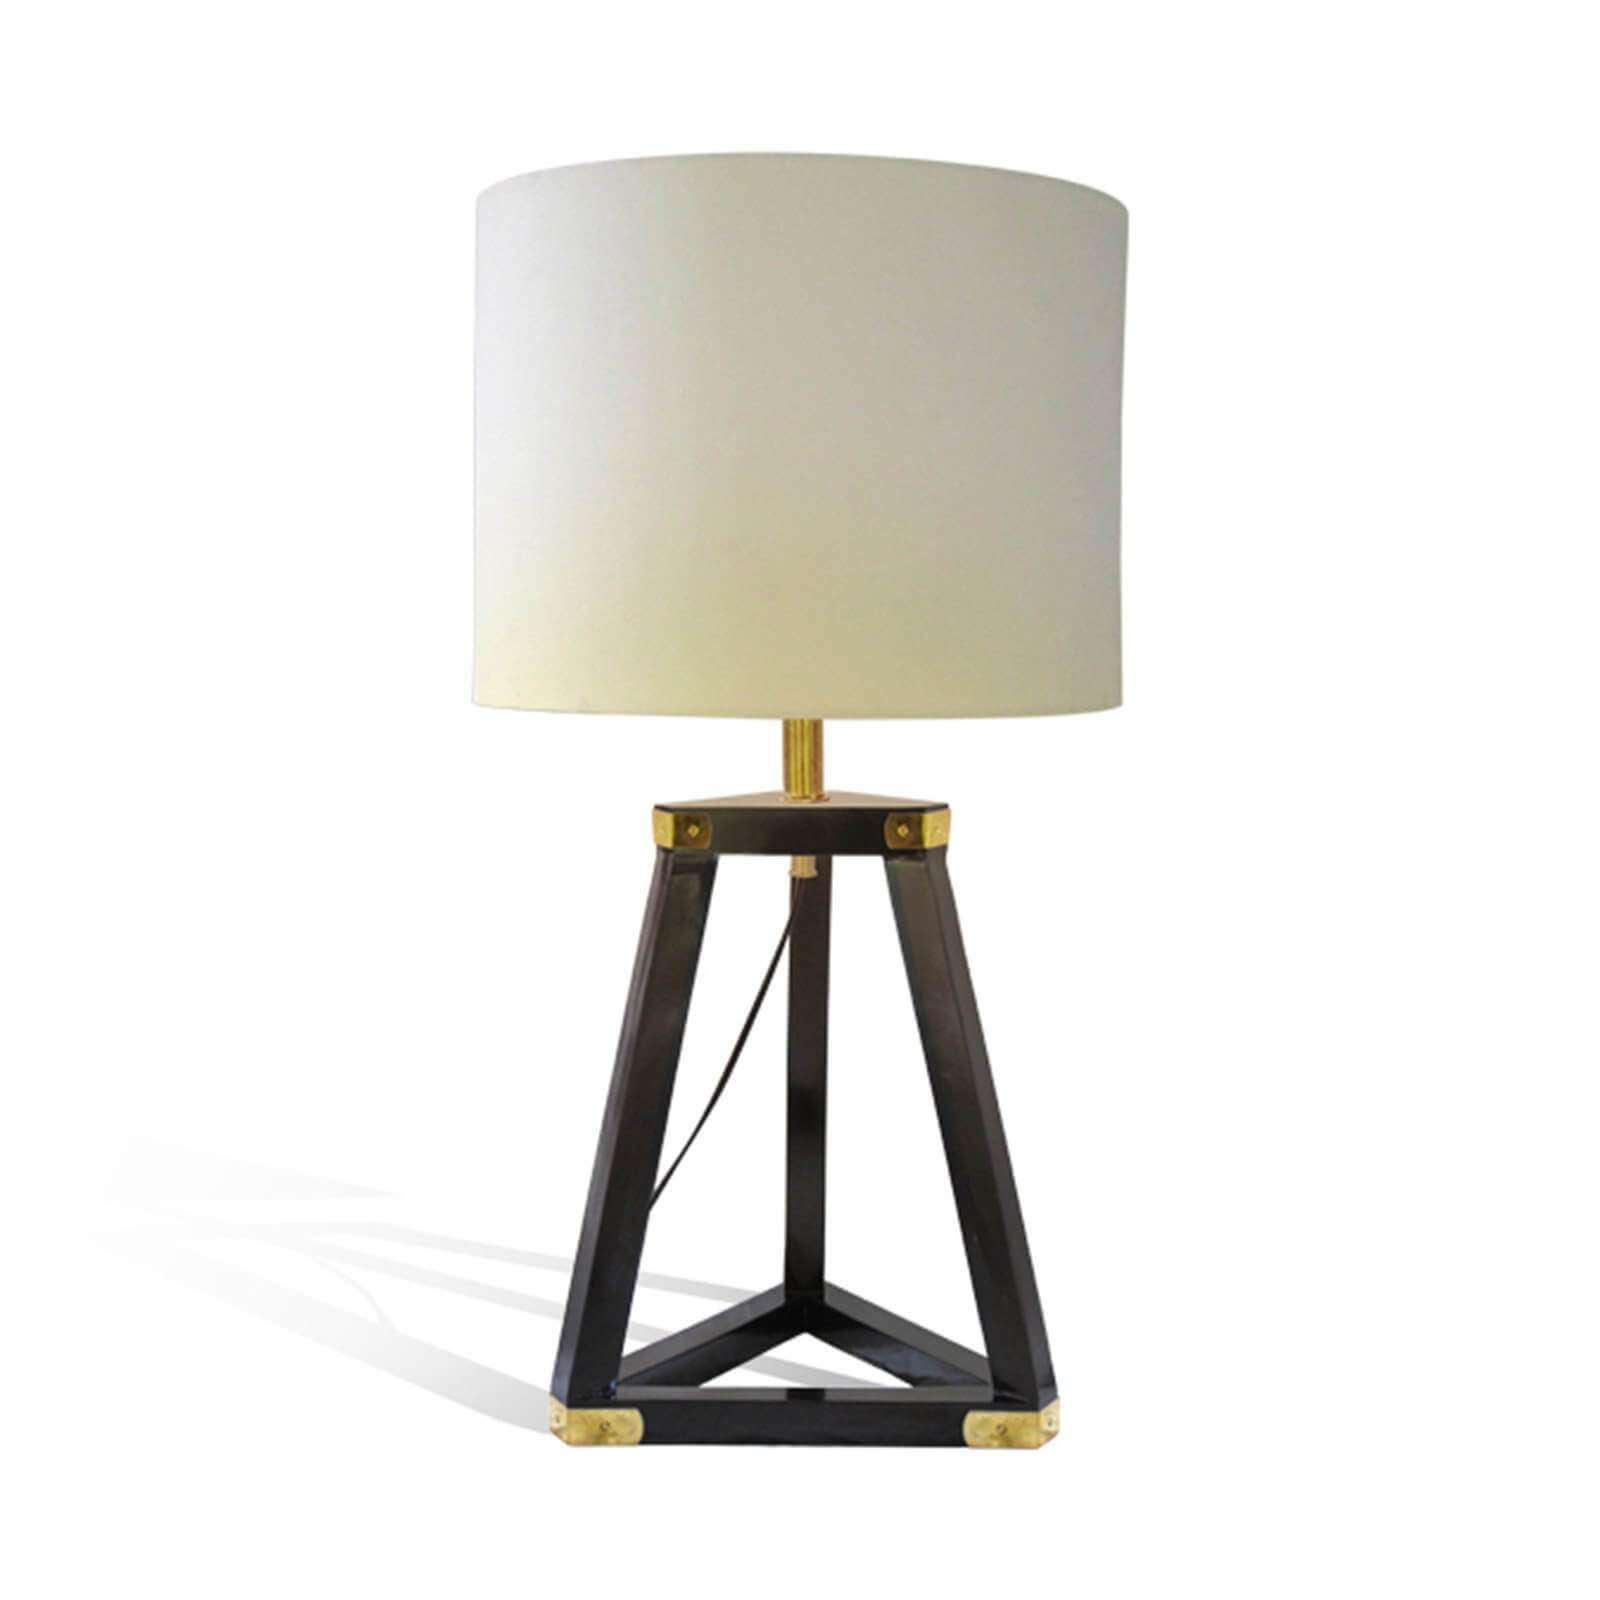 PENTHOUSE TABLE LAMP / DARK BROWN